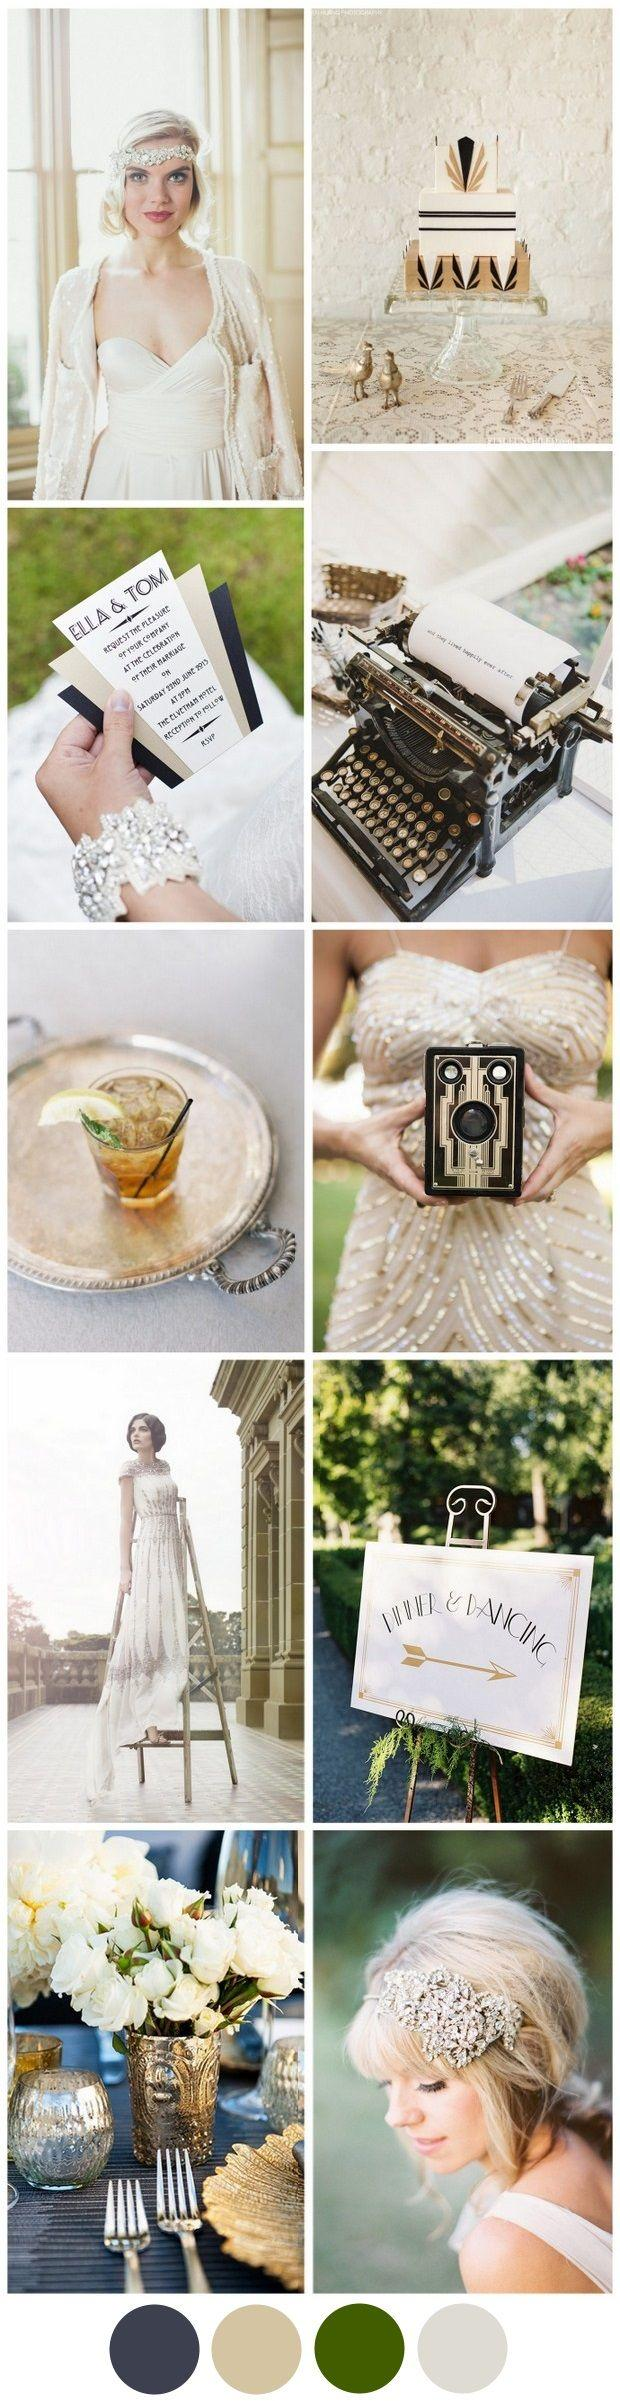 Wedding - Channeling The Great Gatsby: Your Art Deco Wedding Theme